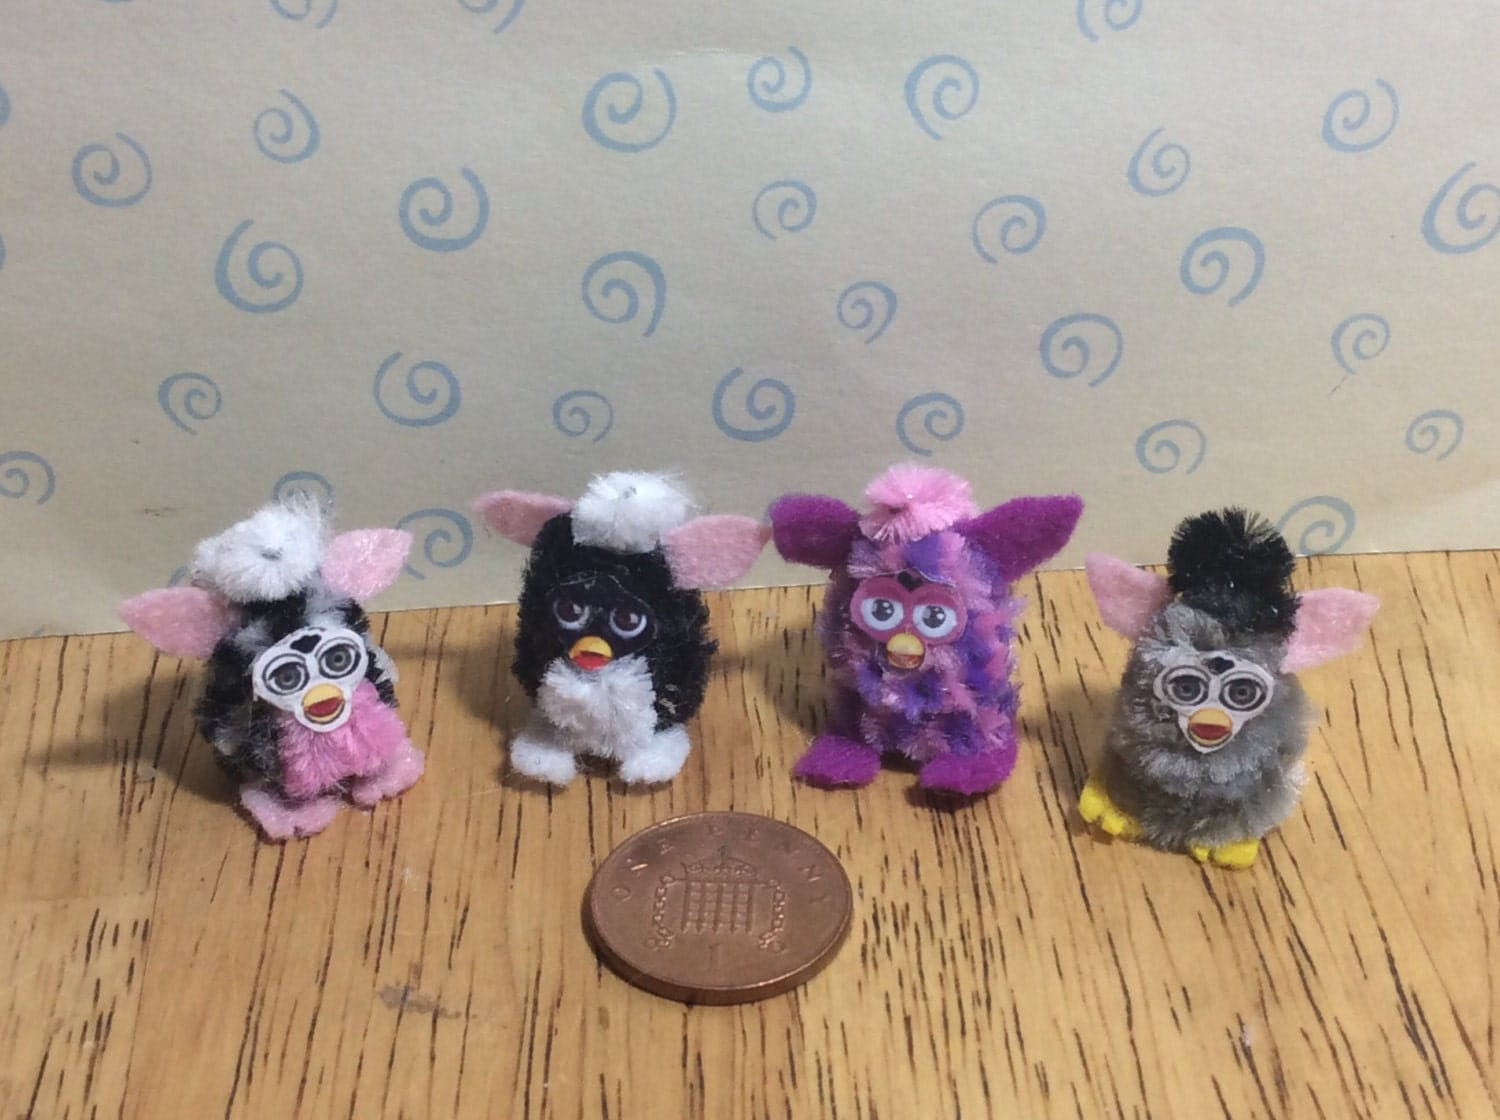 1 x Hand made Dolls house Miniature replica furby toy 112 scale